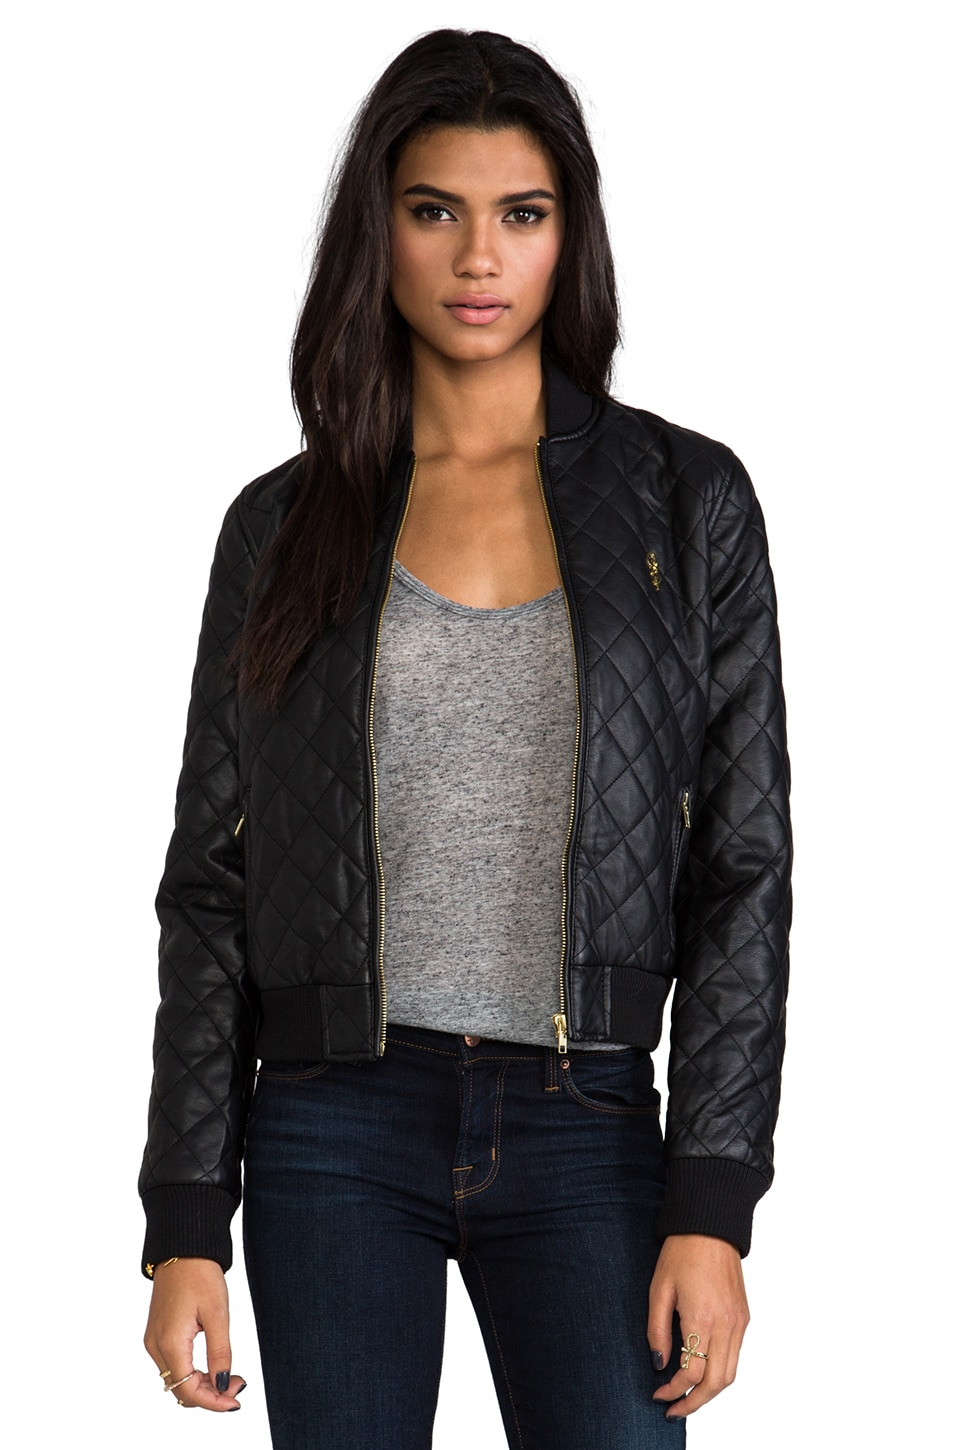 Obey Riot Squad Bomber Jacket in Black